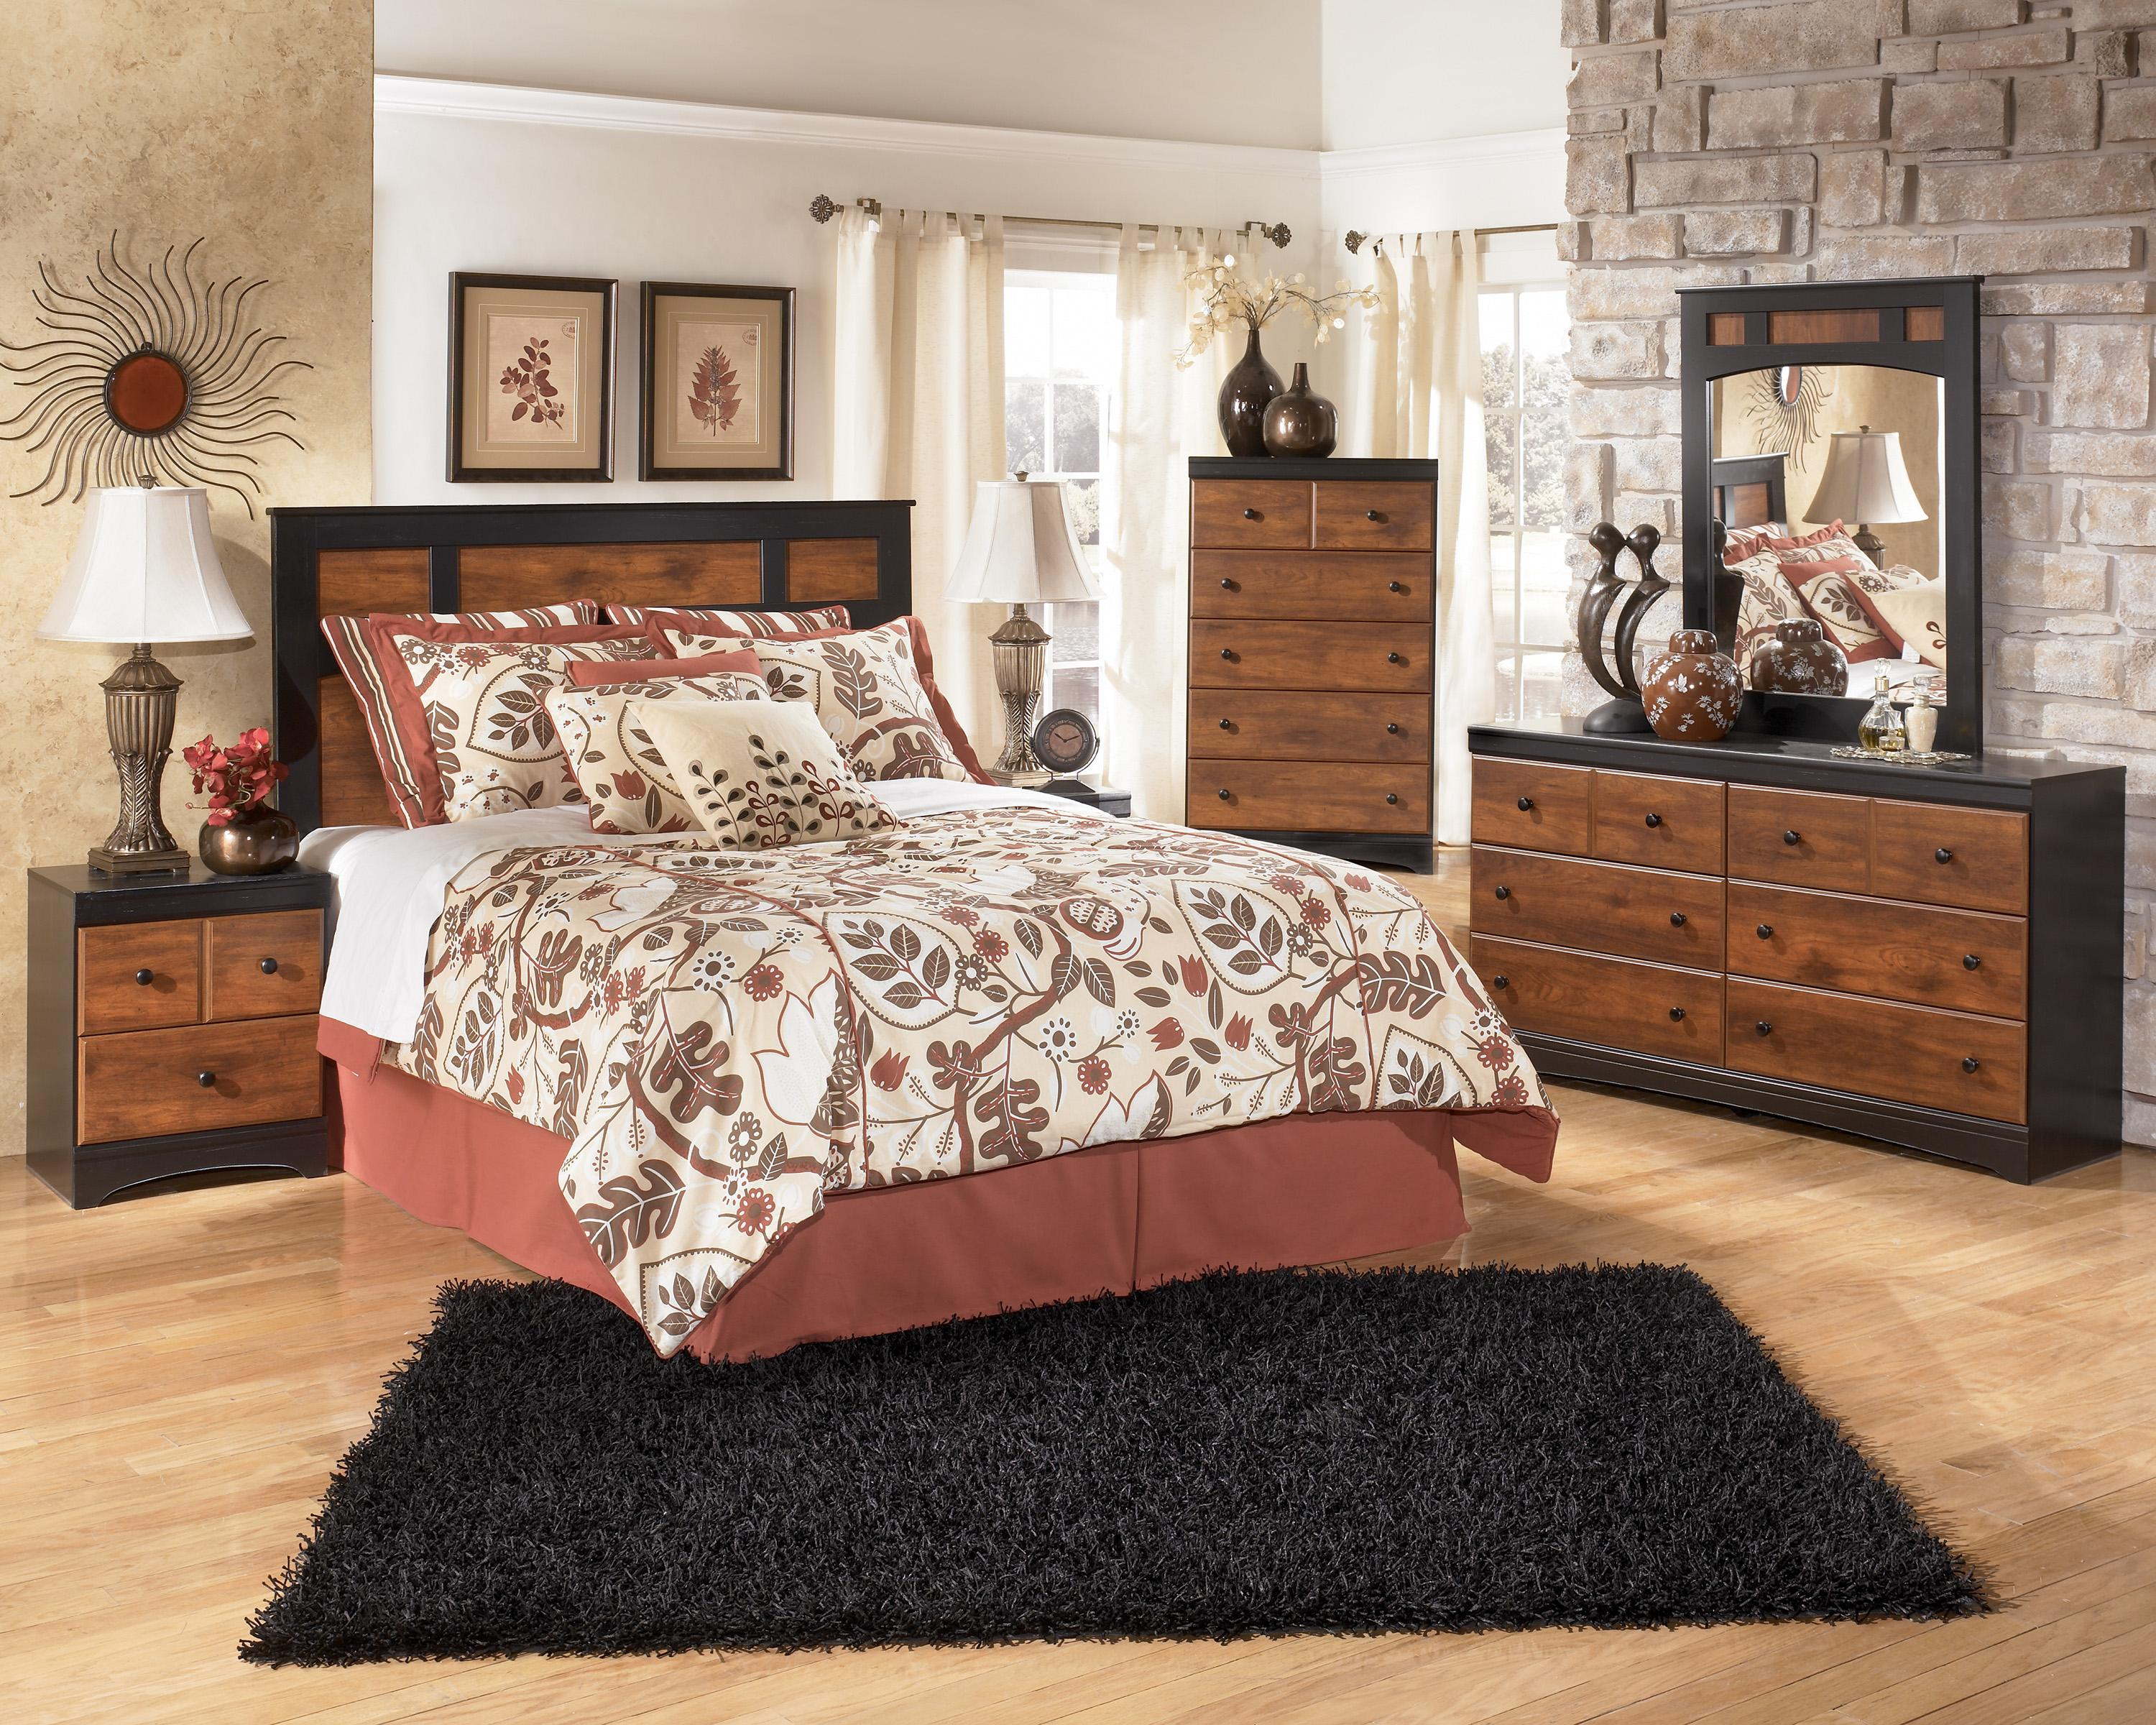 Signature Design by Ashley Aimwell Queen Bedroom Group - Item Number: B136 Q Bedroom Group 1